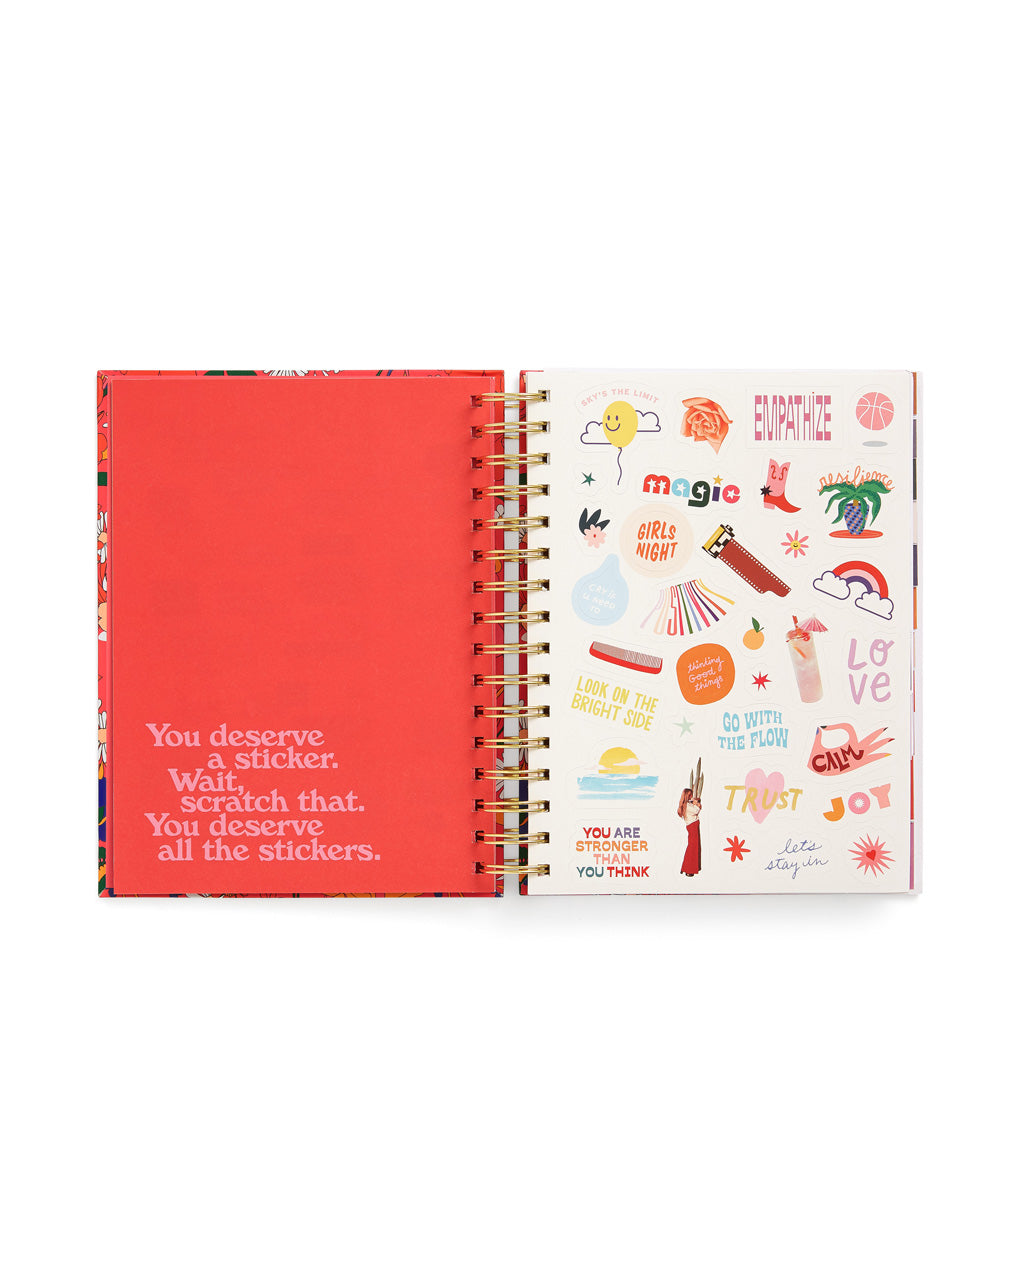 interior image of sticker sheet included within planner